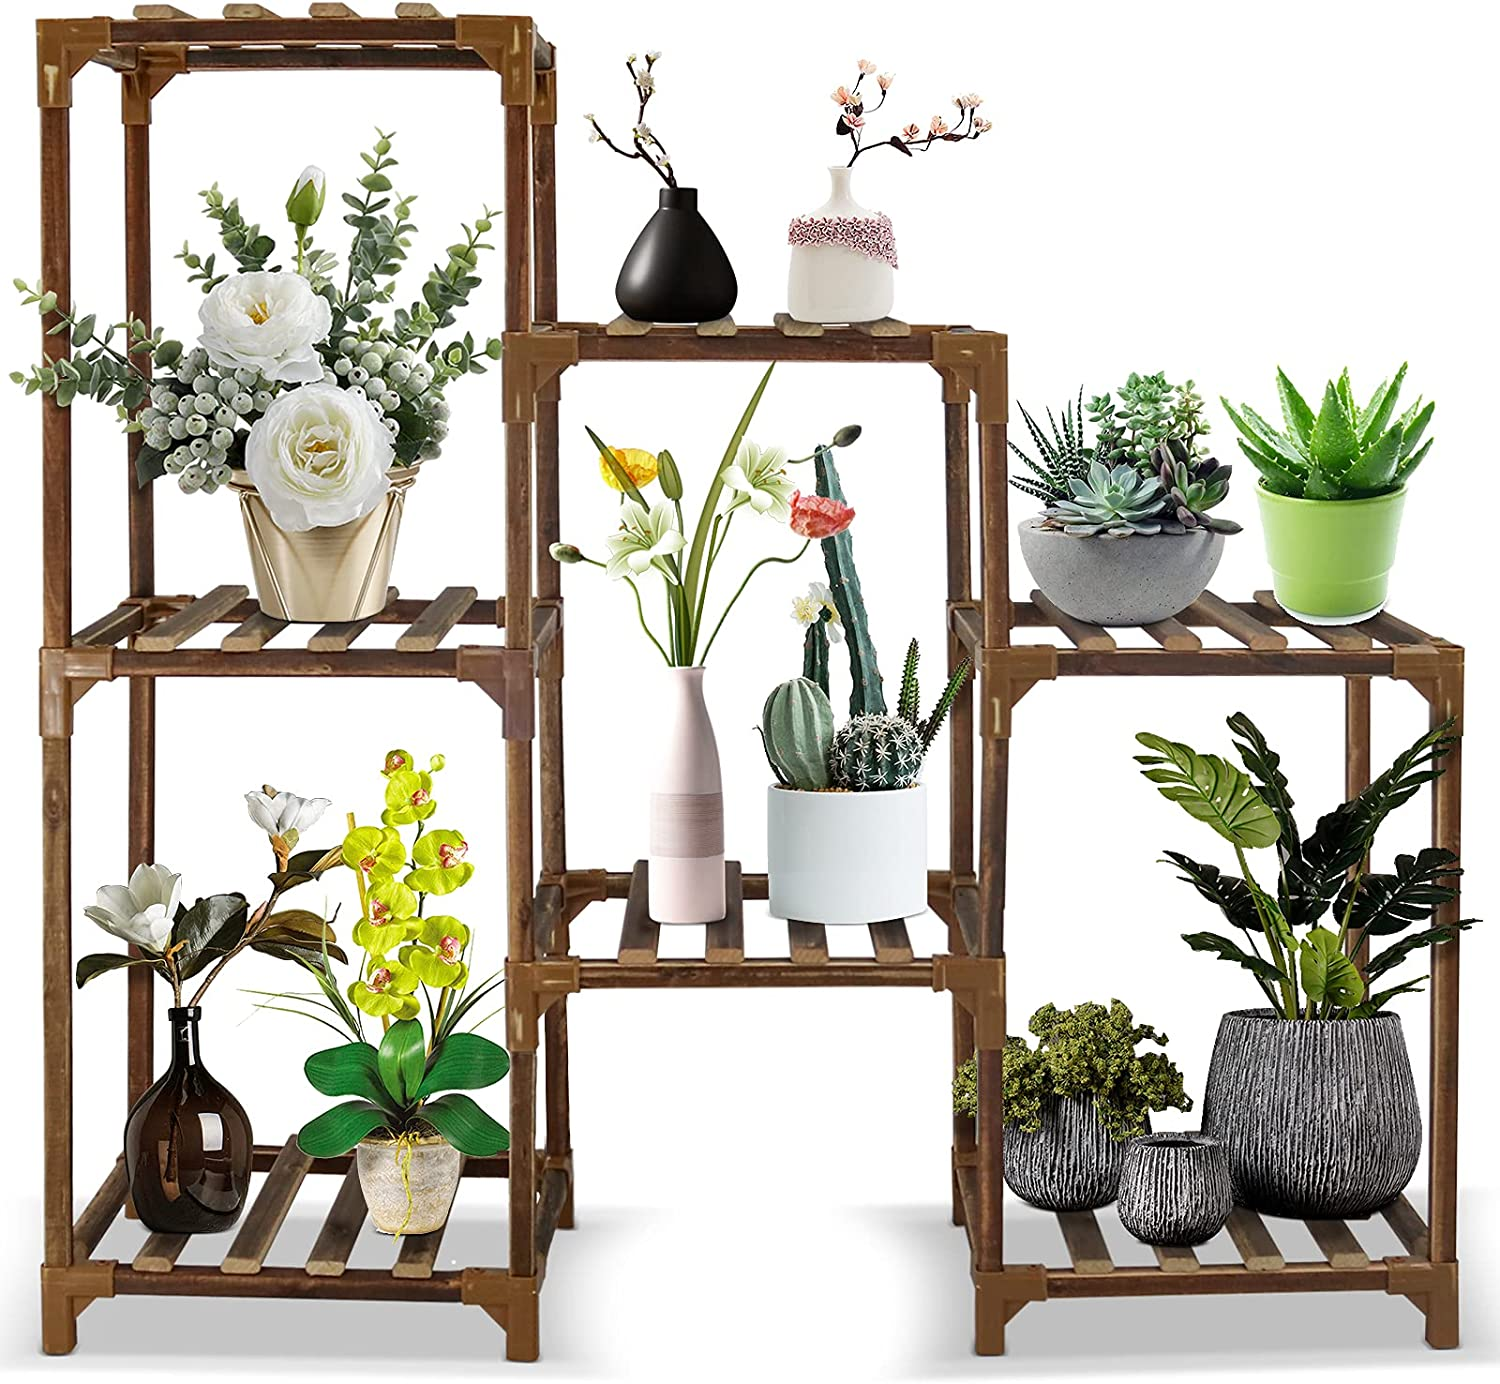 Tiered Plant Stands for Spring new work Multiple price Outdoor L Flymer Indoor Plants